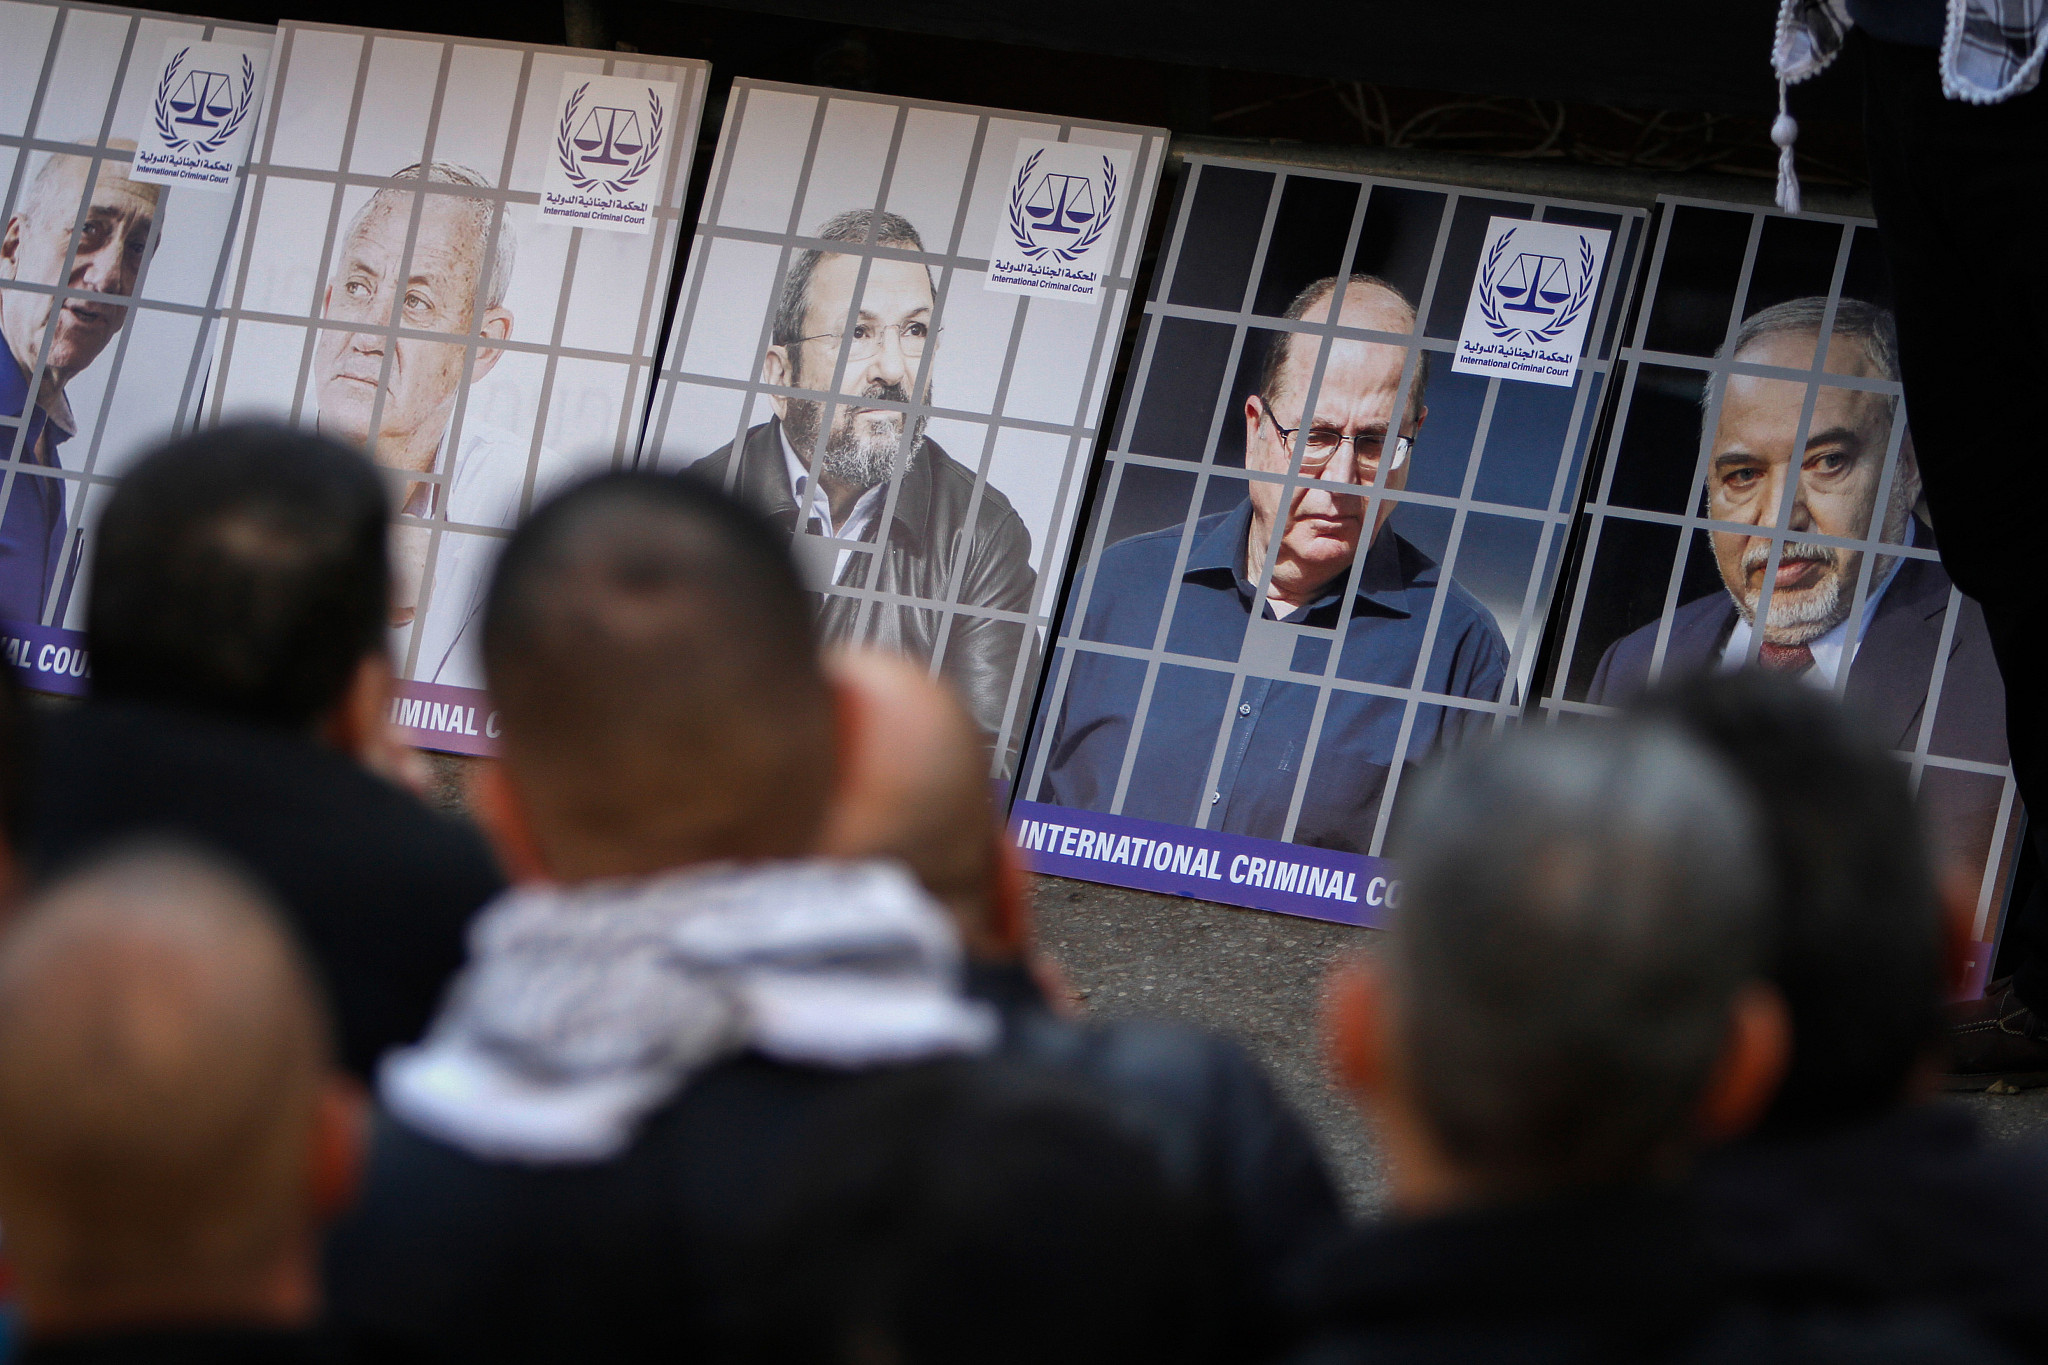 Palestinian demonstrators and Fatah supporters stand before the images of Israeli Prime Minister Benjamin Netanyahu and other Israeli leaders during a rally in the West Bank city of Nablus on January 6, 2020. (Nasser Ishtayeh / Flash90)